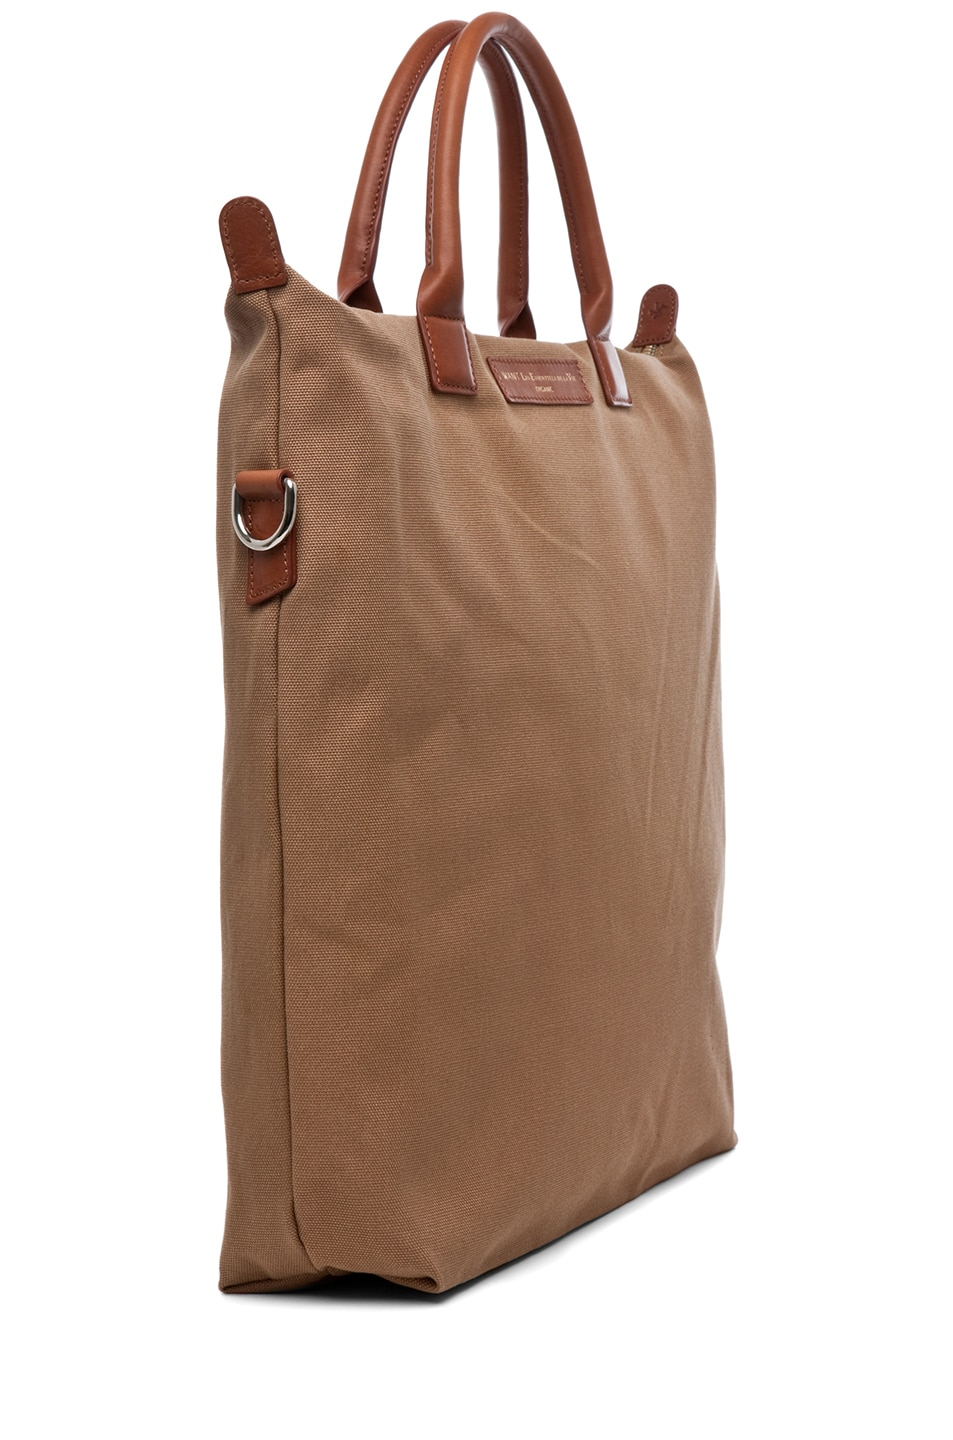 Image 3 of Want Les Essentiels De La Vie O'Hare Shopper Tote in Beige & Cognac